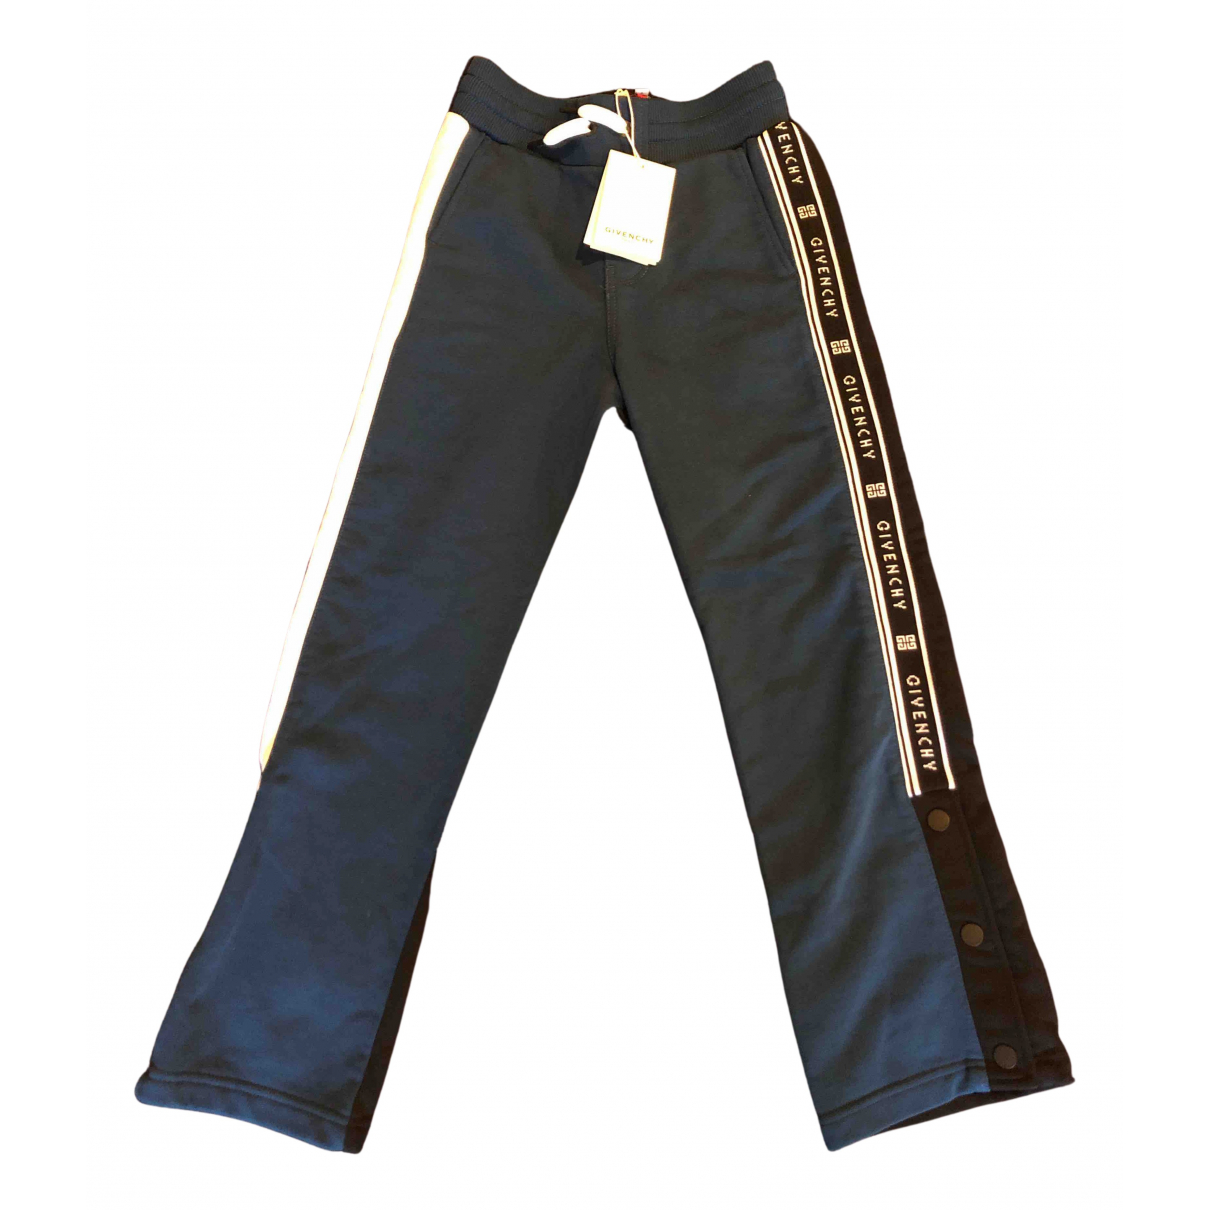 Givenchy N Blue Cotton Trousers for Kids 8 years - up to 128cm FR